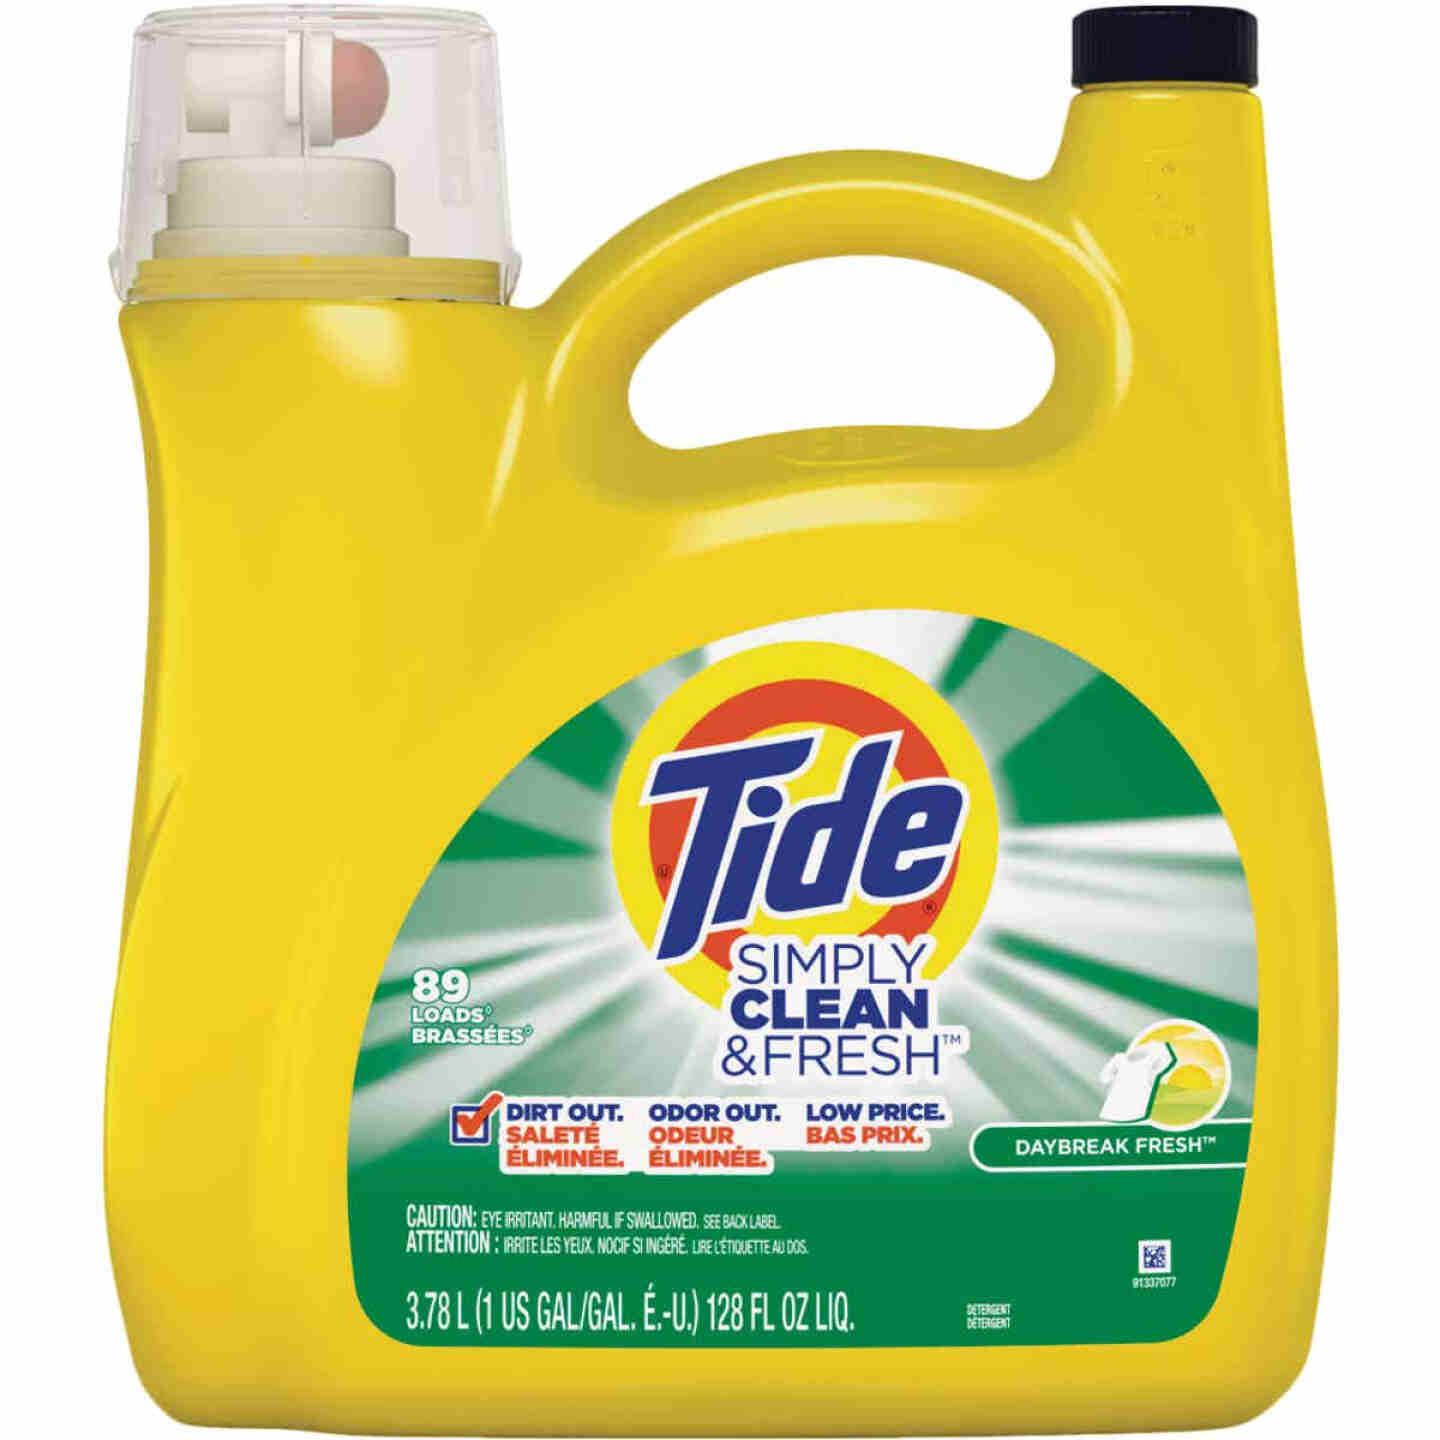 Tide Simply Clean & Fresh 128 Oz. 89 Load High Efficiency Liquid Laundry Detergent Image 1